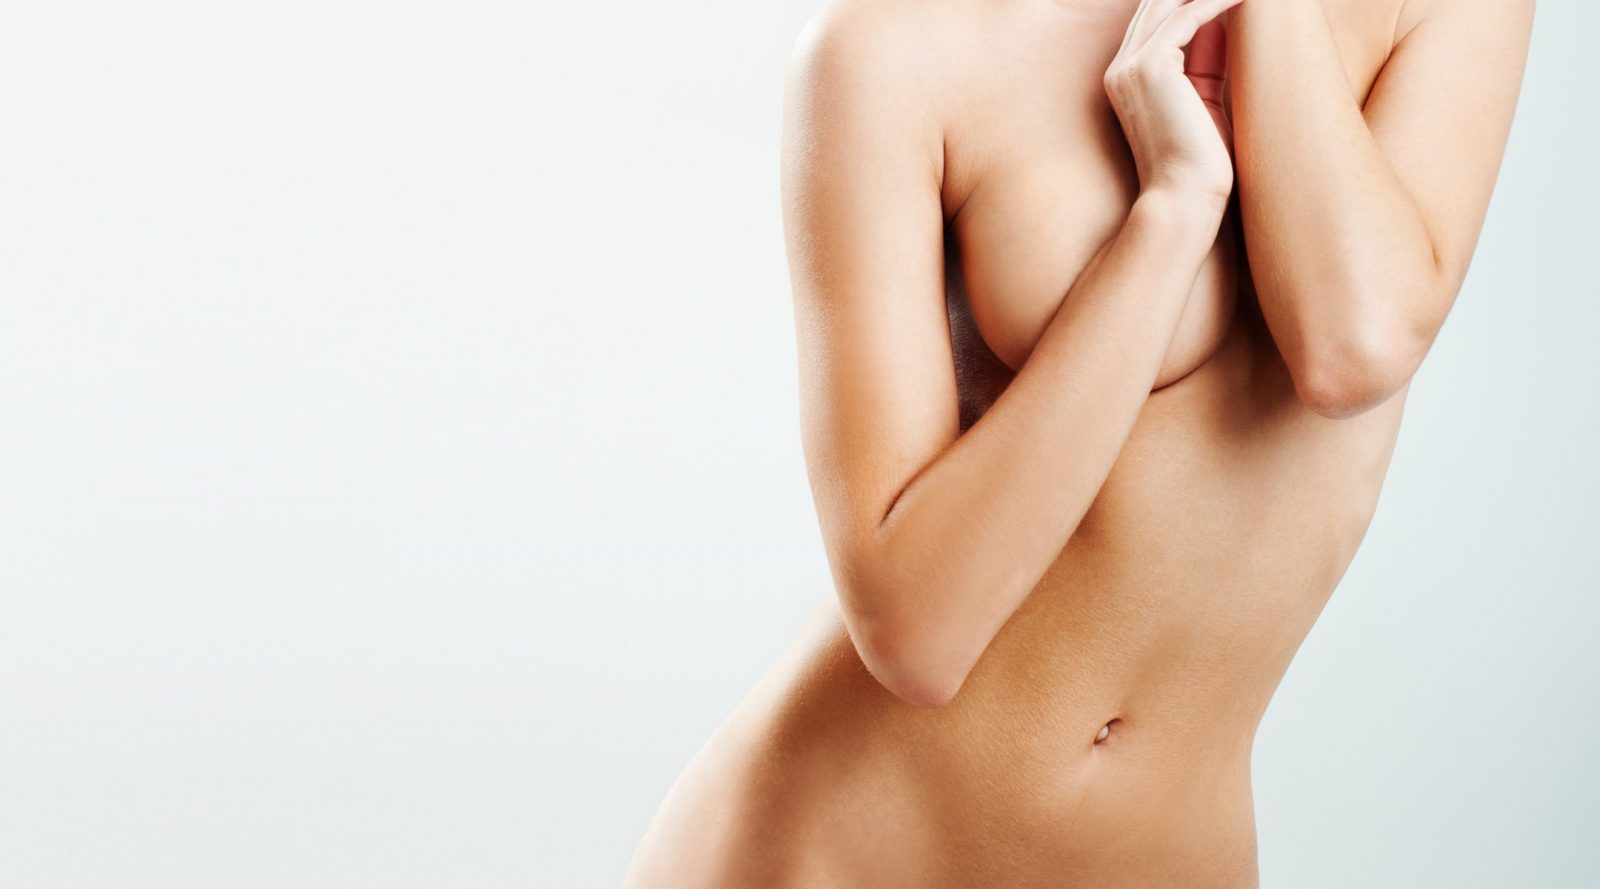 Naked woman body